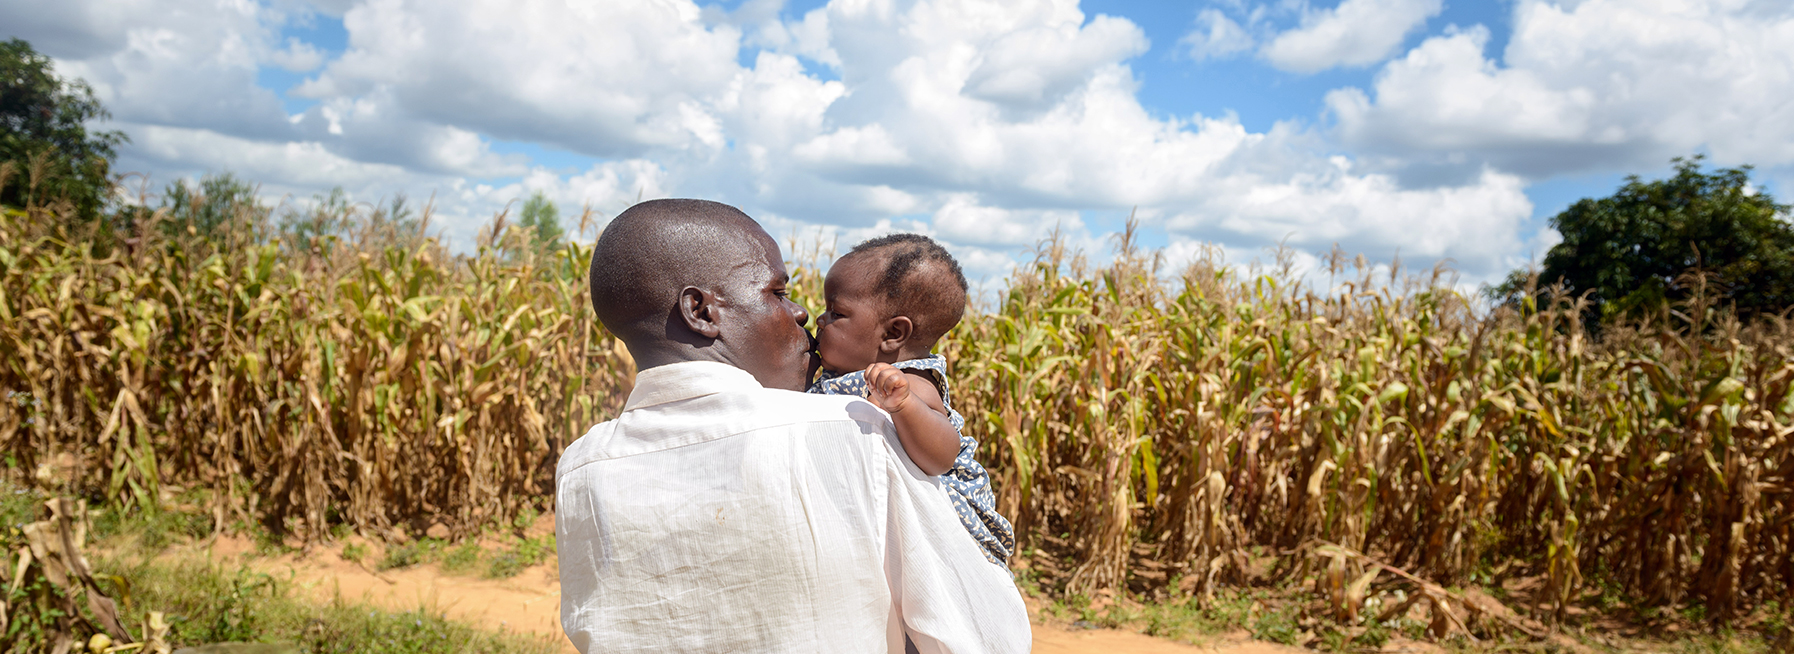 Father kisses baby daughter in Malawi.